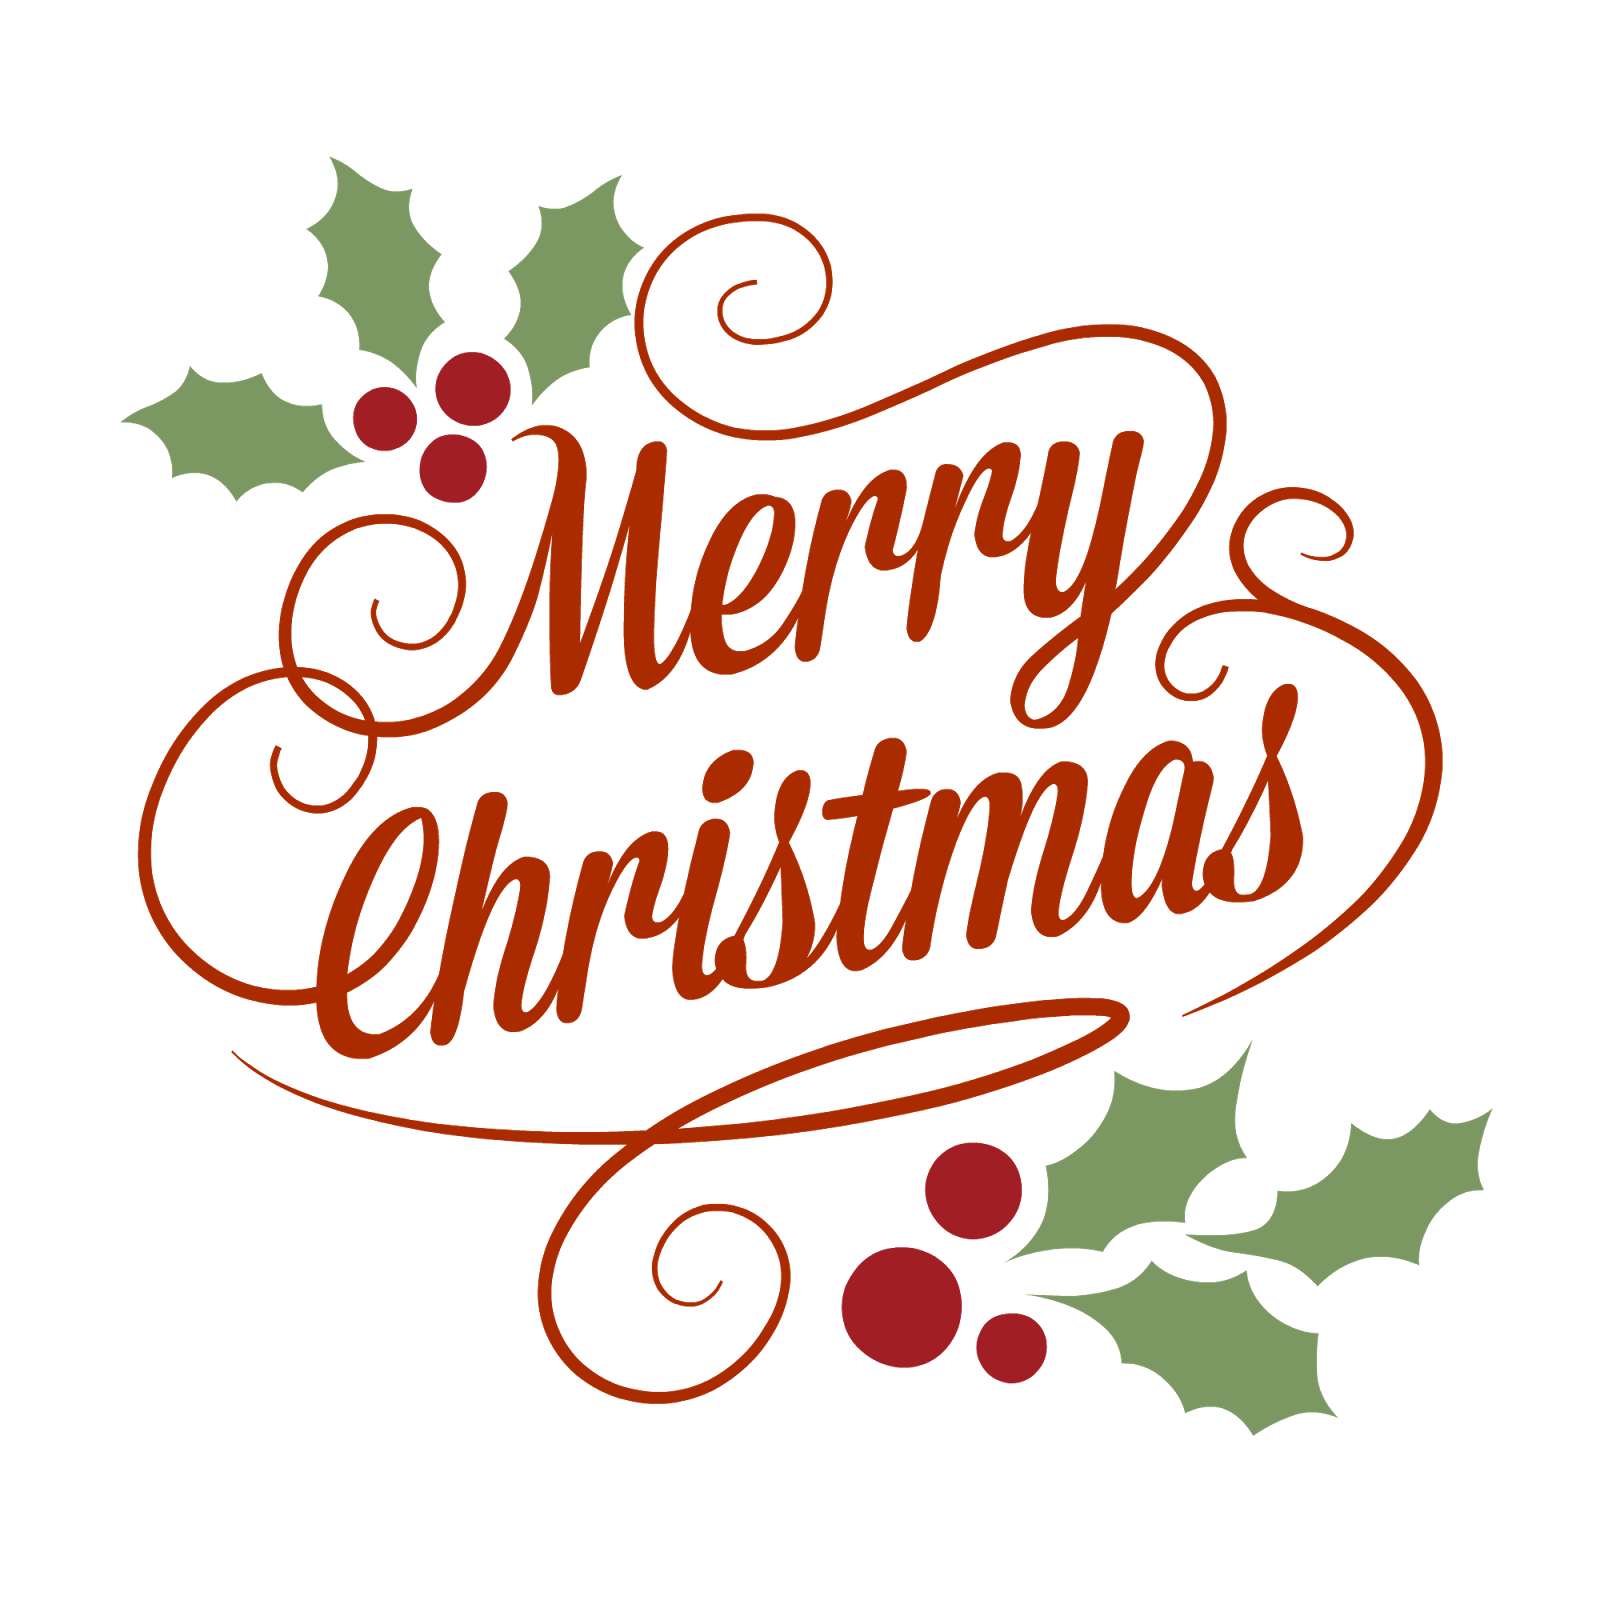 Merry christmas png happy. Transparent pictures free icons